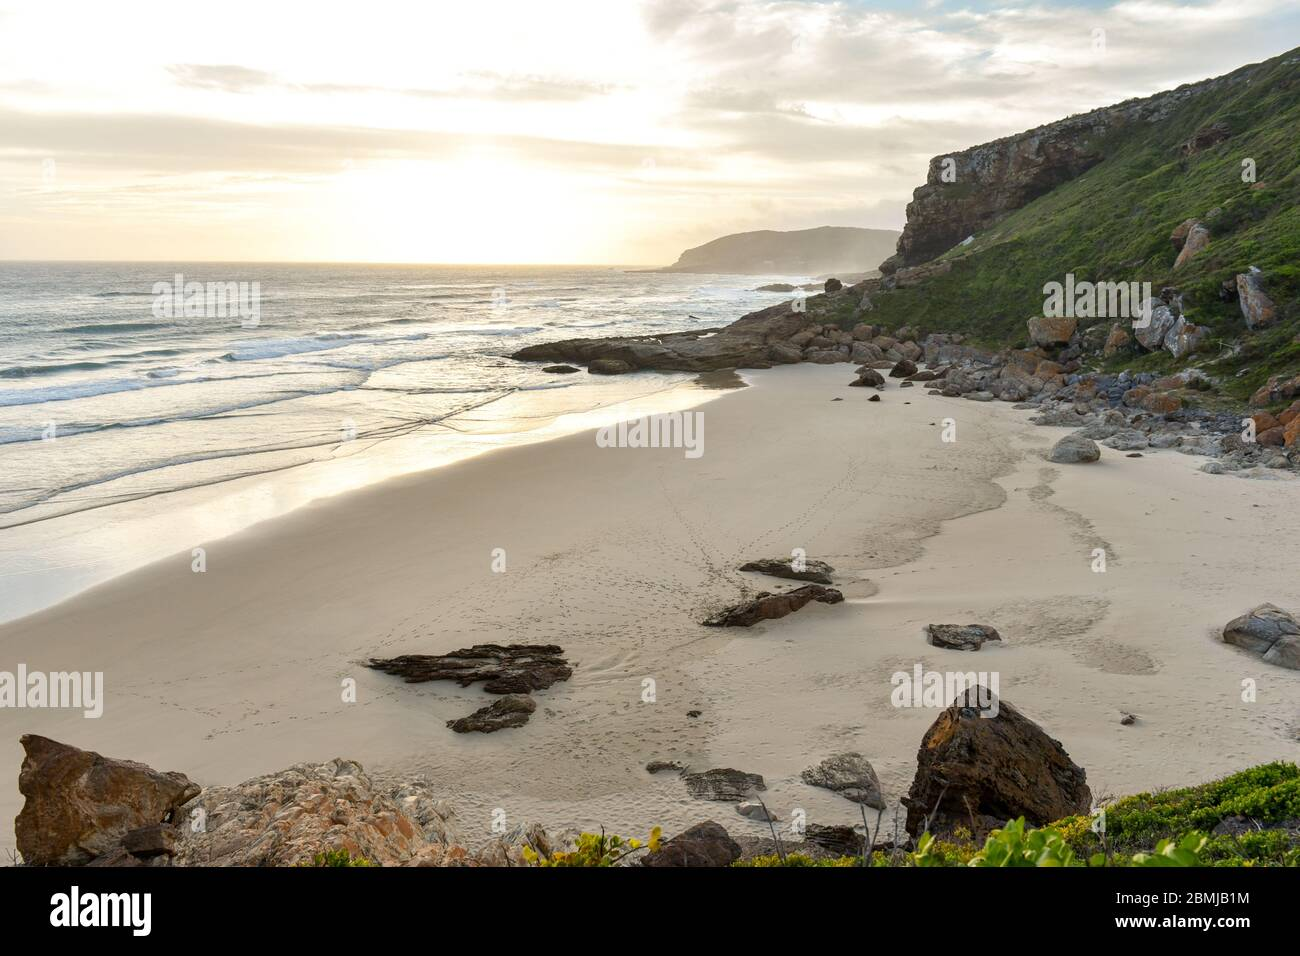 Sunset at the Robberg Beach and Robberg Nature Reserve near Plettenberg Bay, Garden Route, South Africa Stock Photo